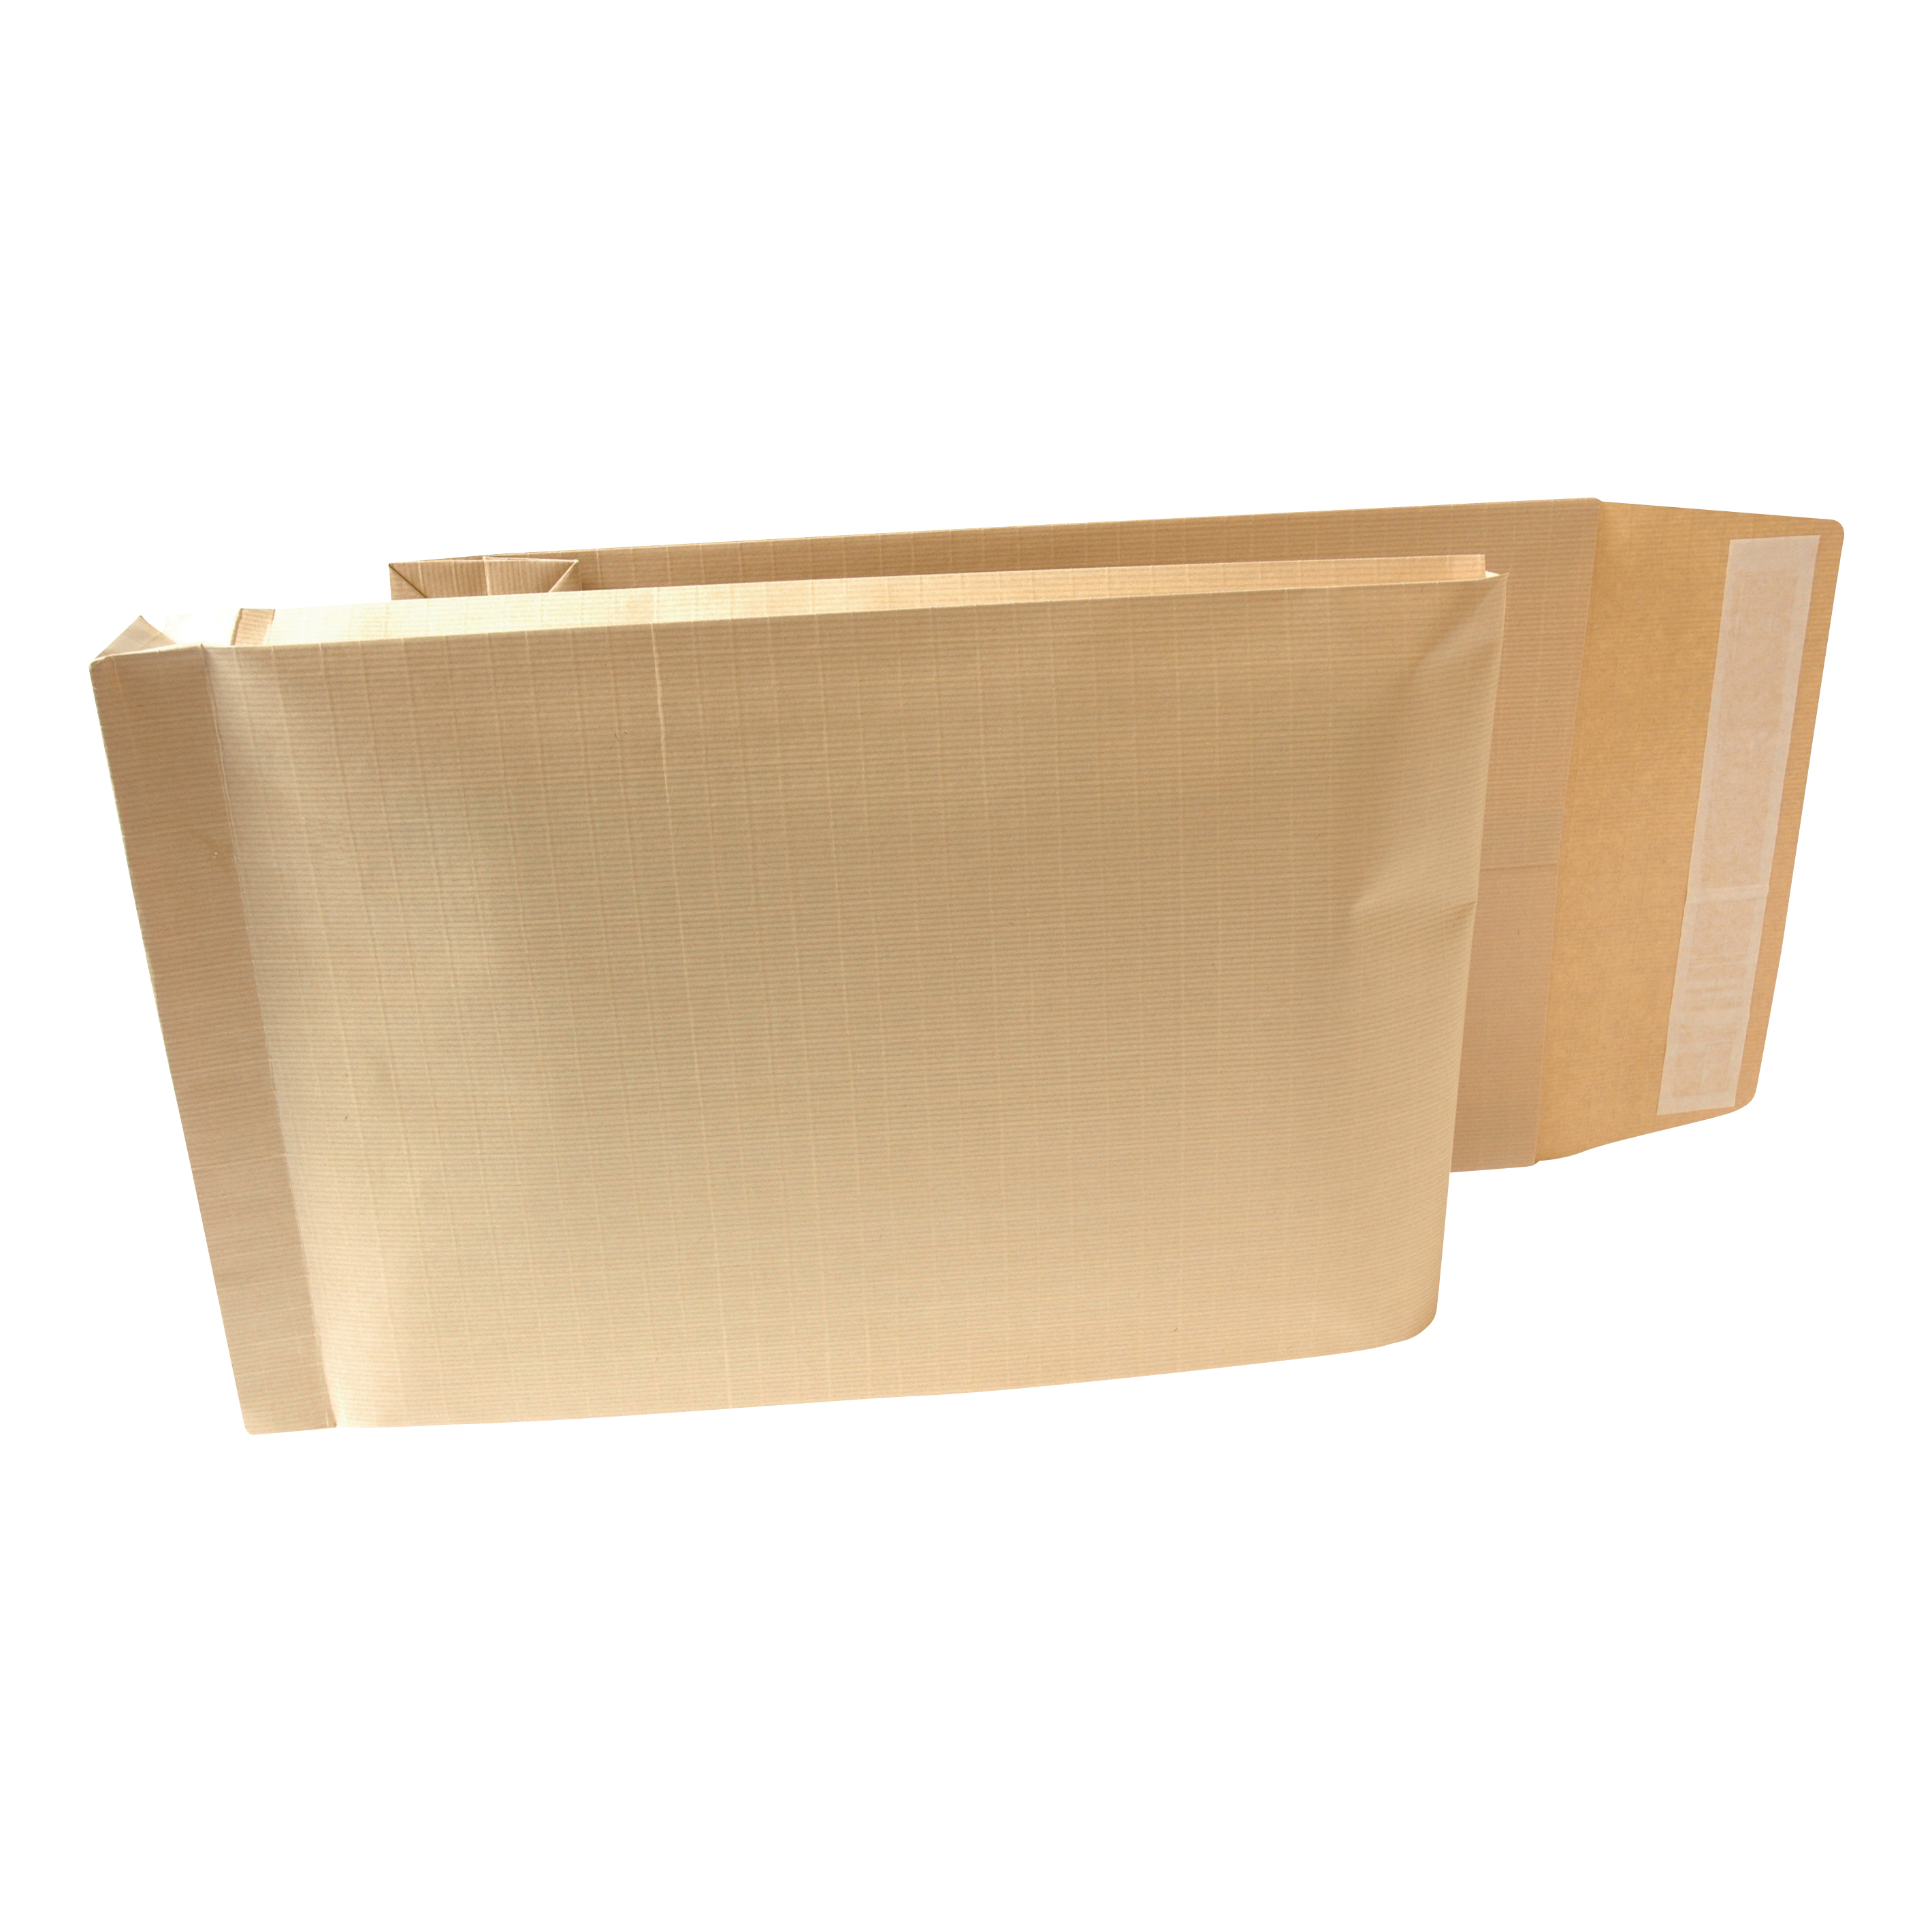 Wage Envelopes New Guardian Armour Envelopes 470x300mm Gusset 70mm Peel&Seal 130gsm Kraft Manilla Ref B28513 Pack 100